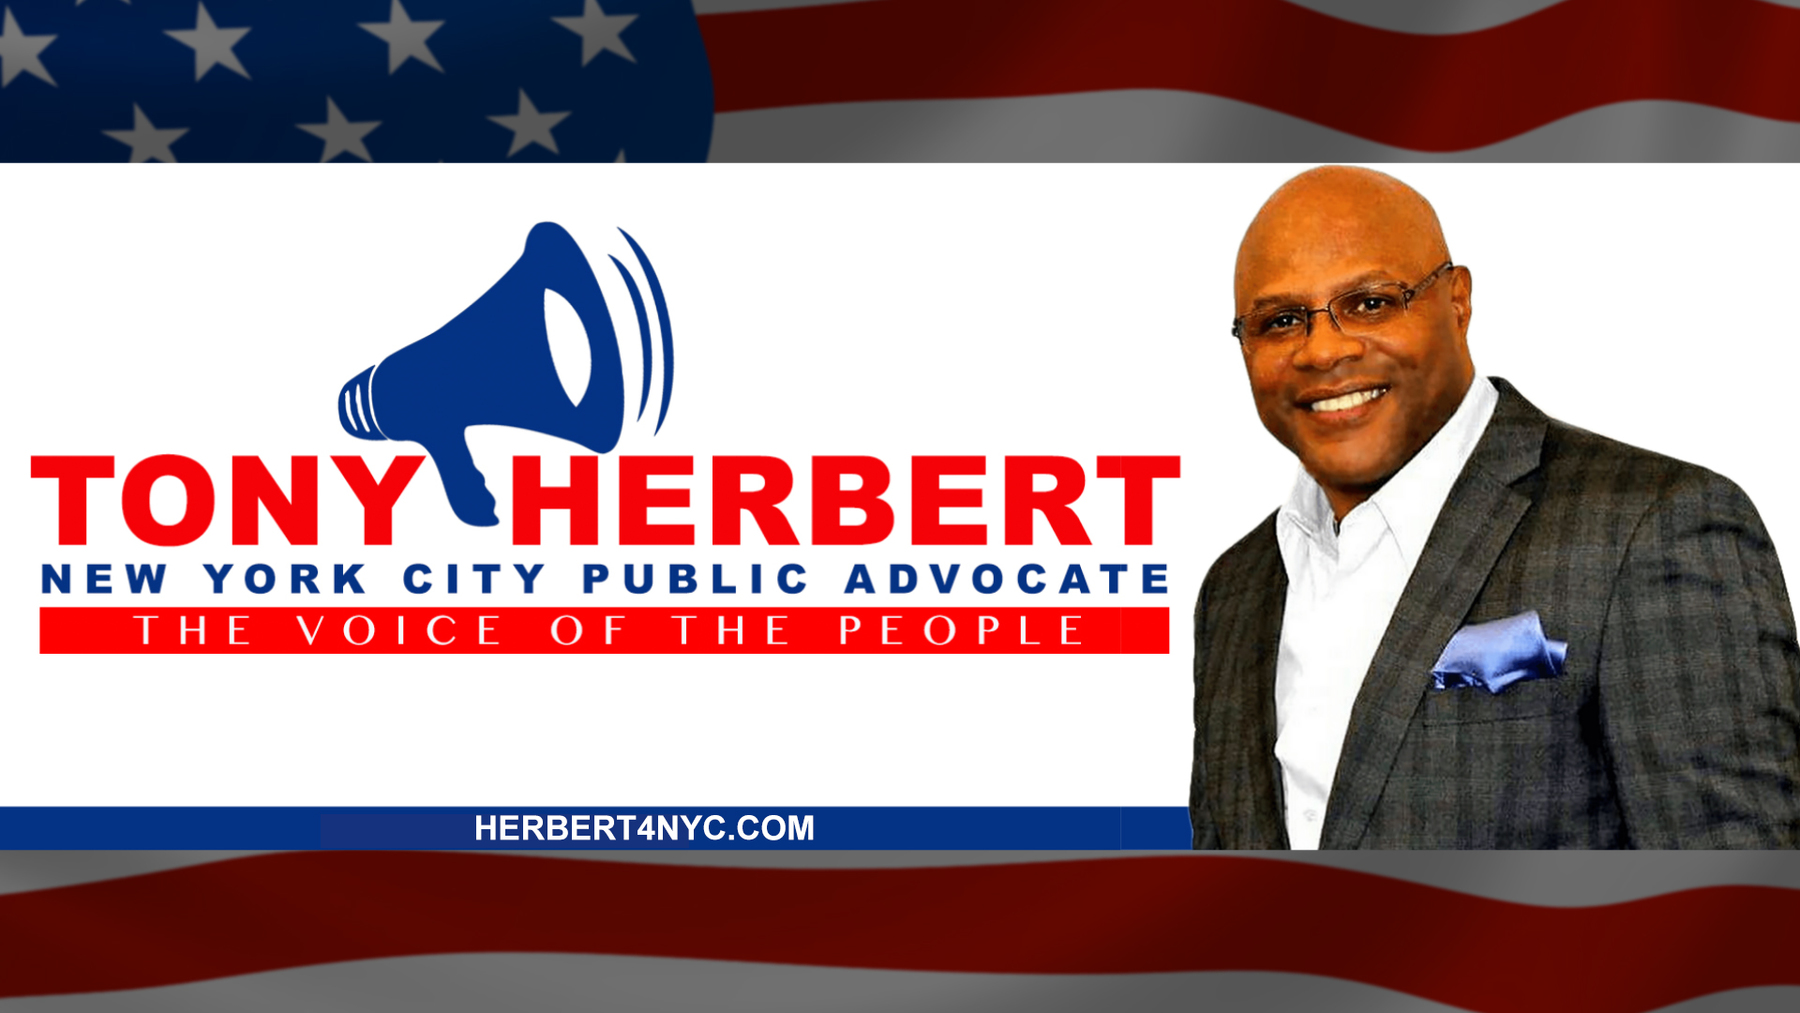 Tony Herbert for Public Advocate: Website Donations